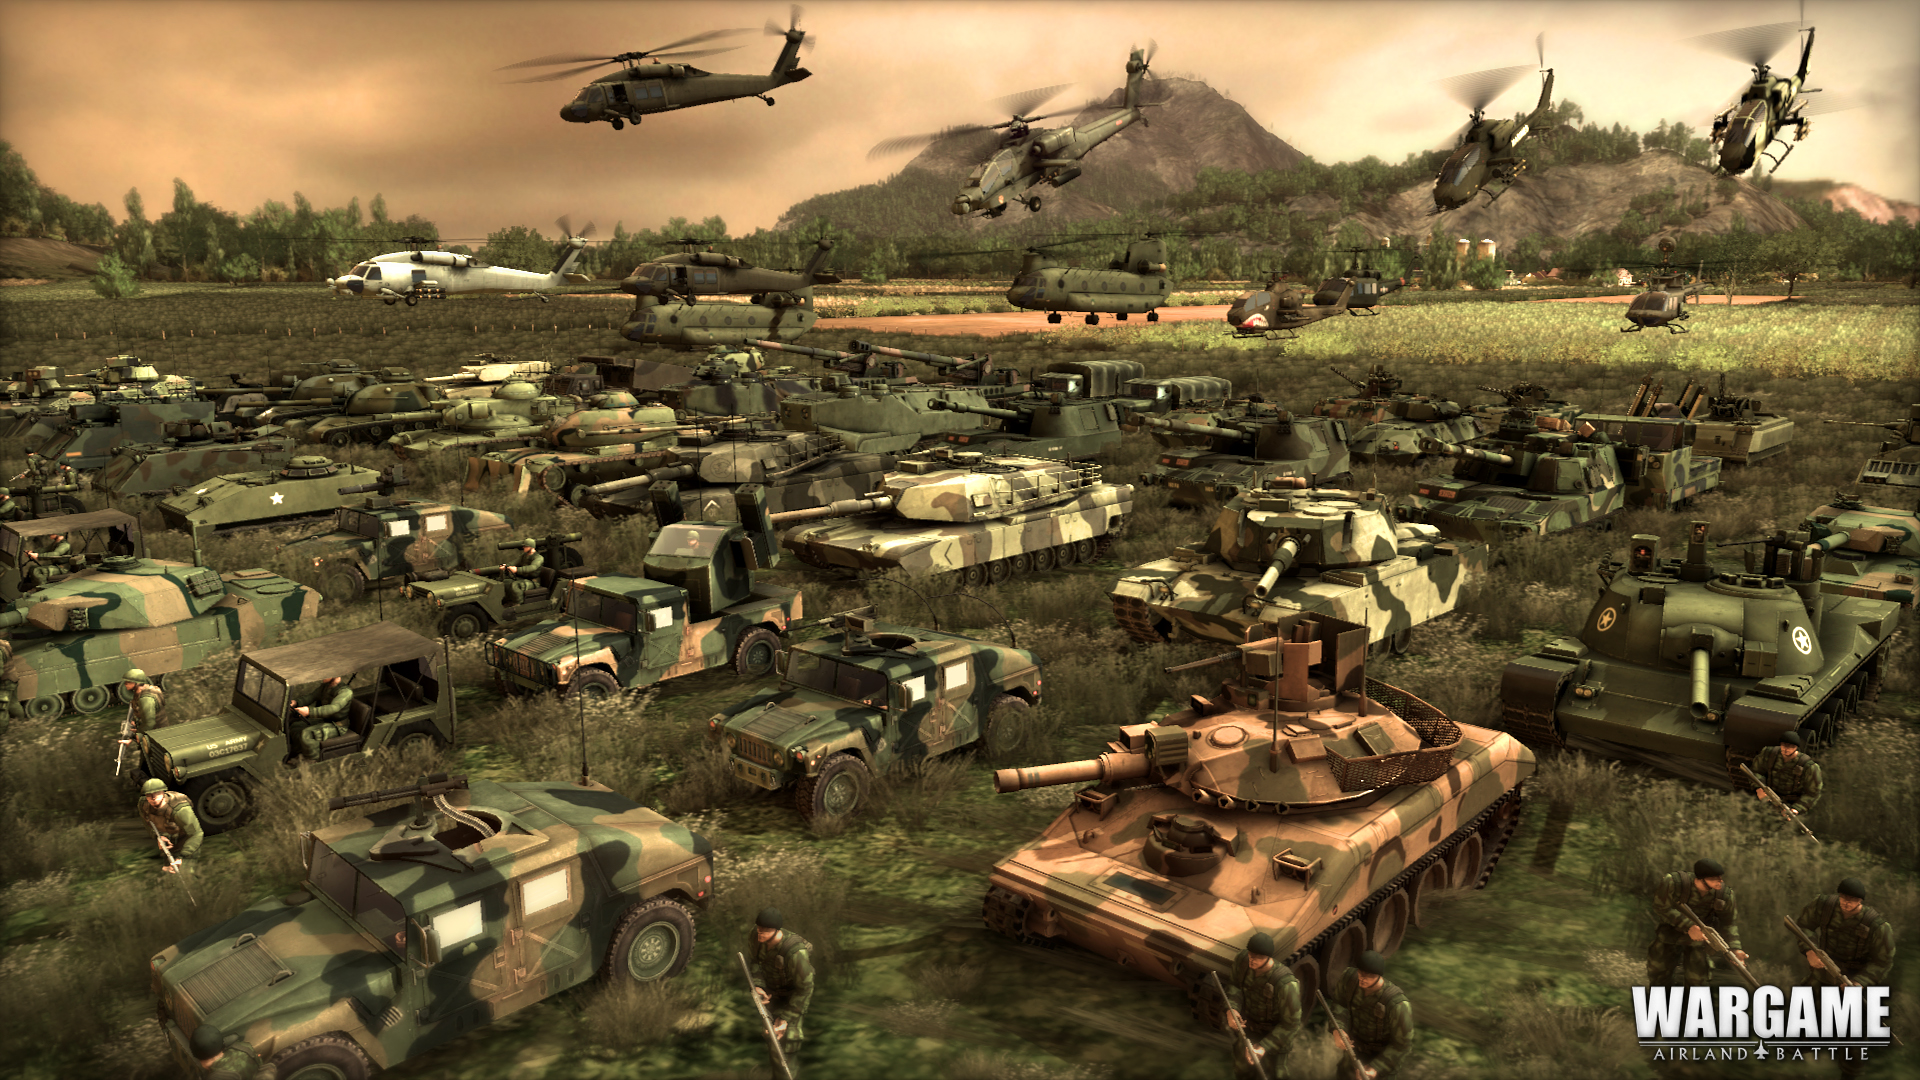 Buy Now! Home Airland Battle Doctrine